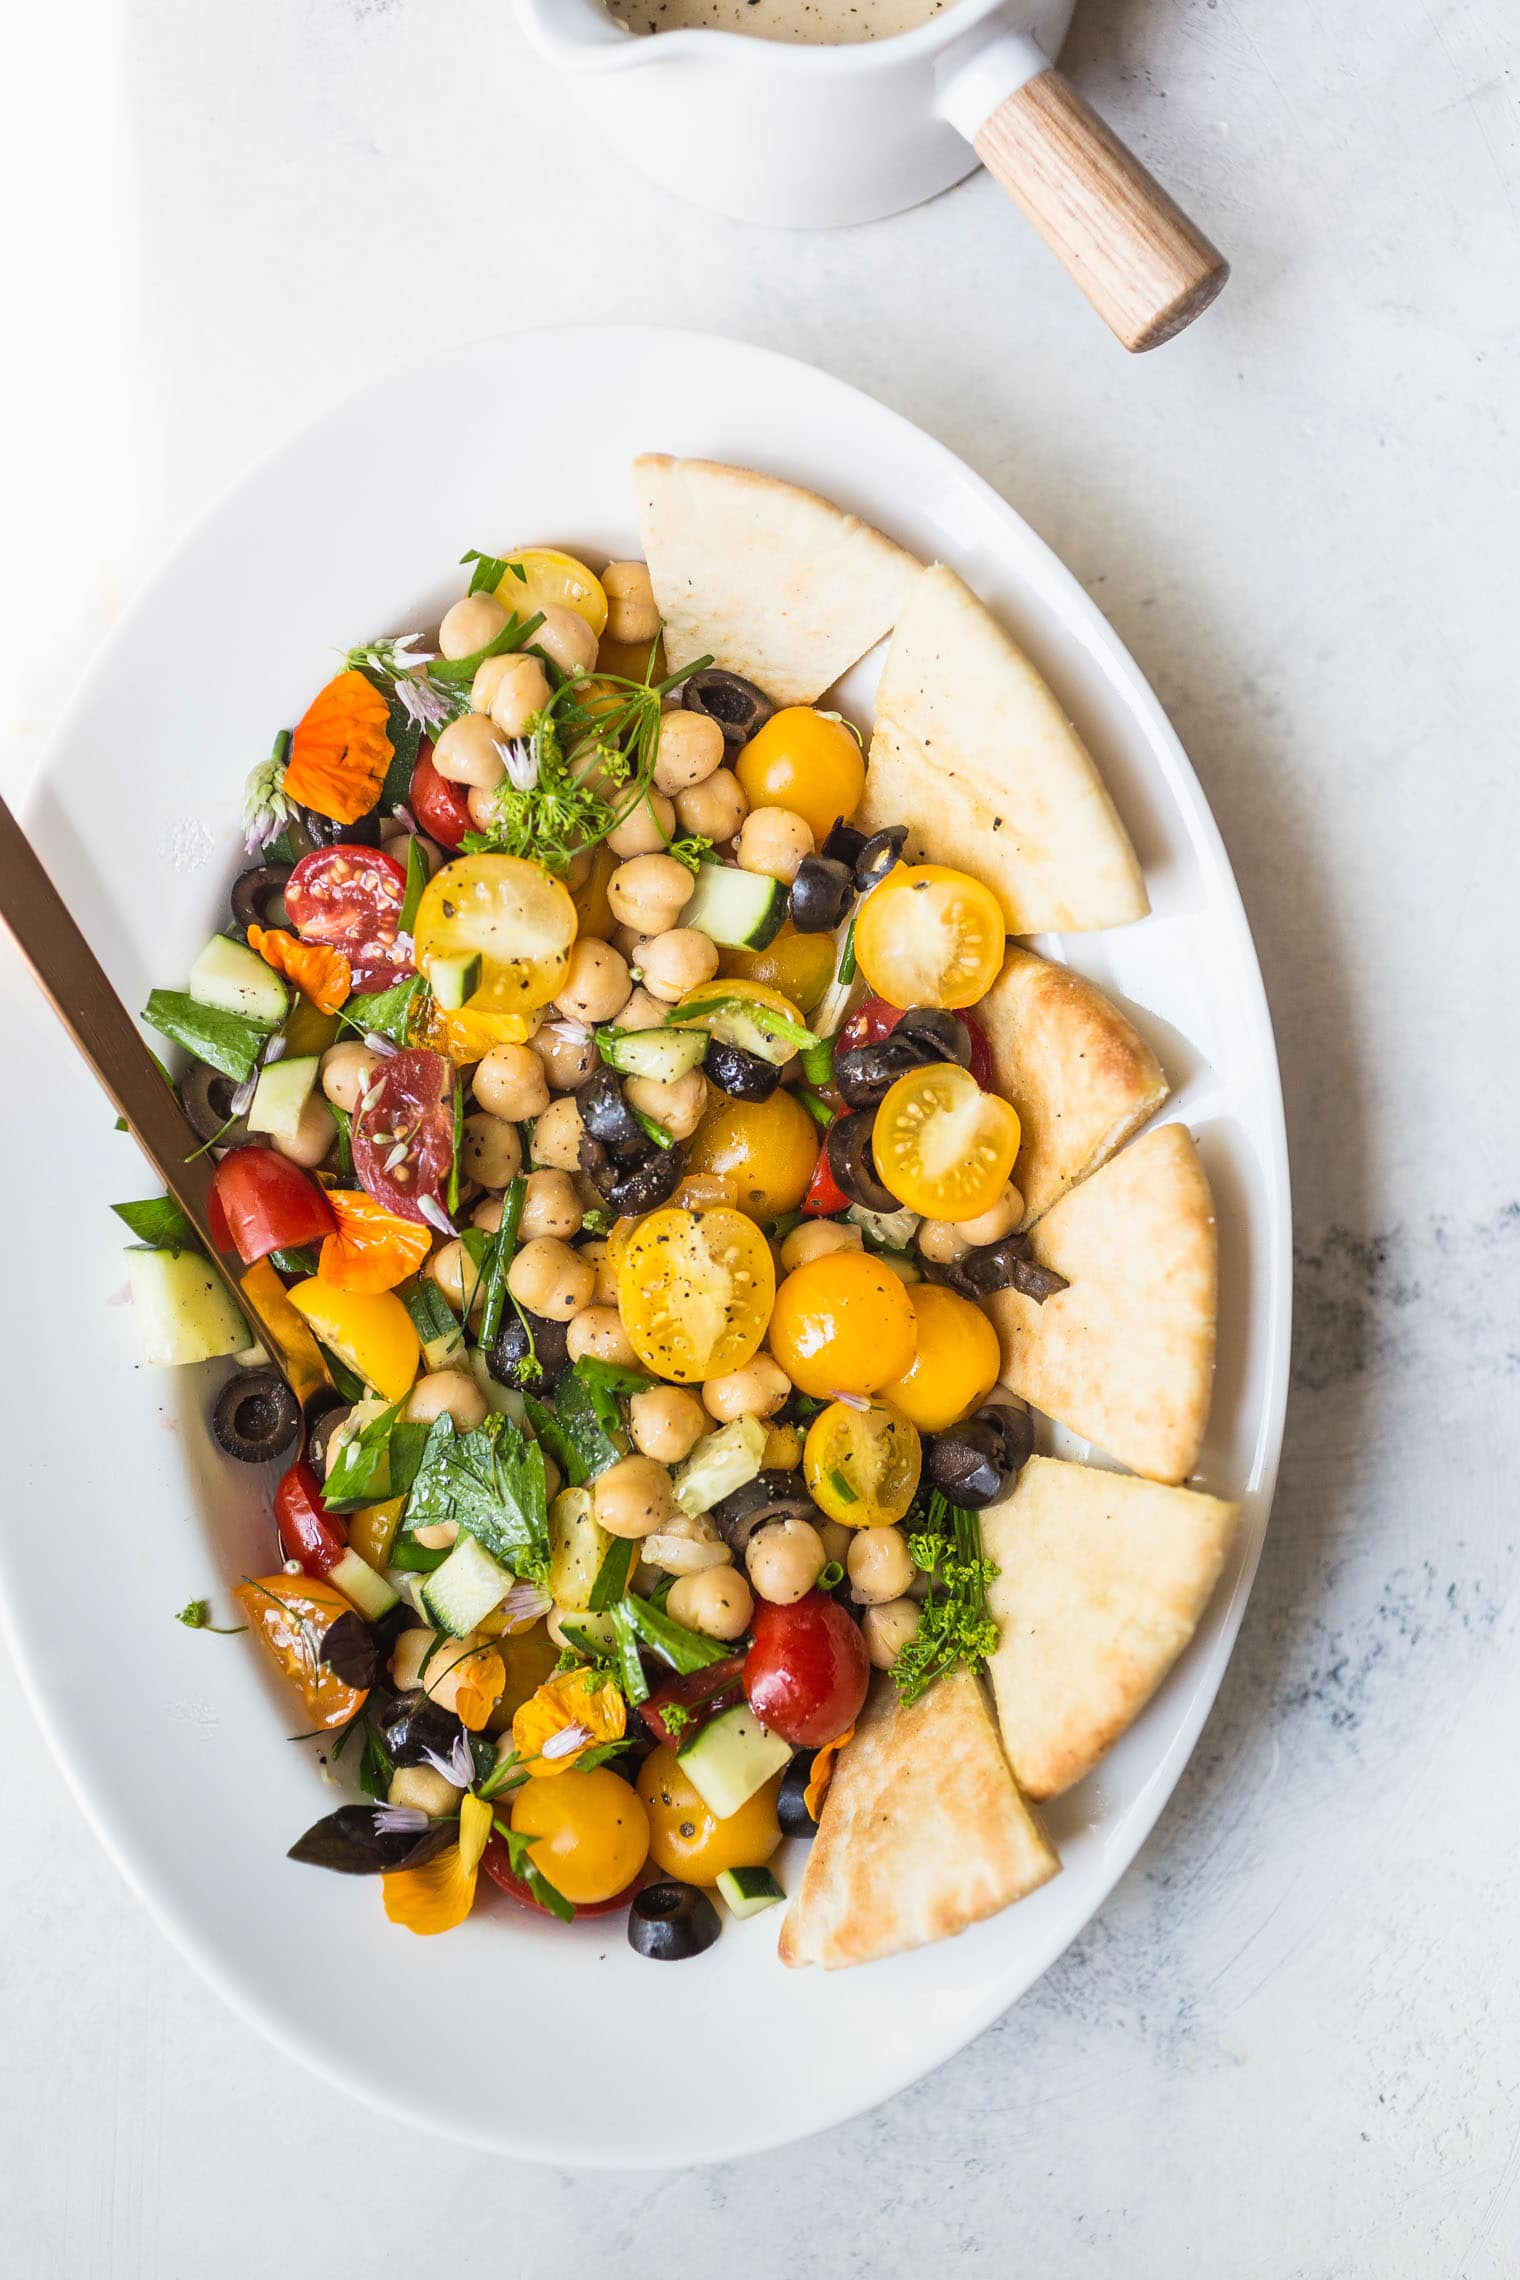 Healthy and Easy Vegetarian Lunch Ideas And Recipes